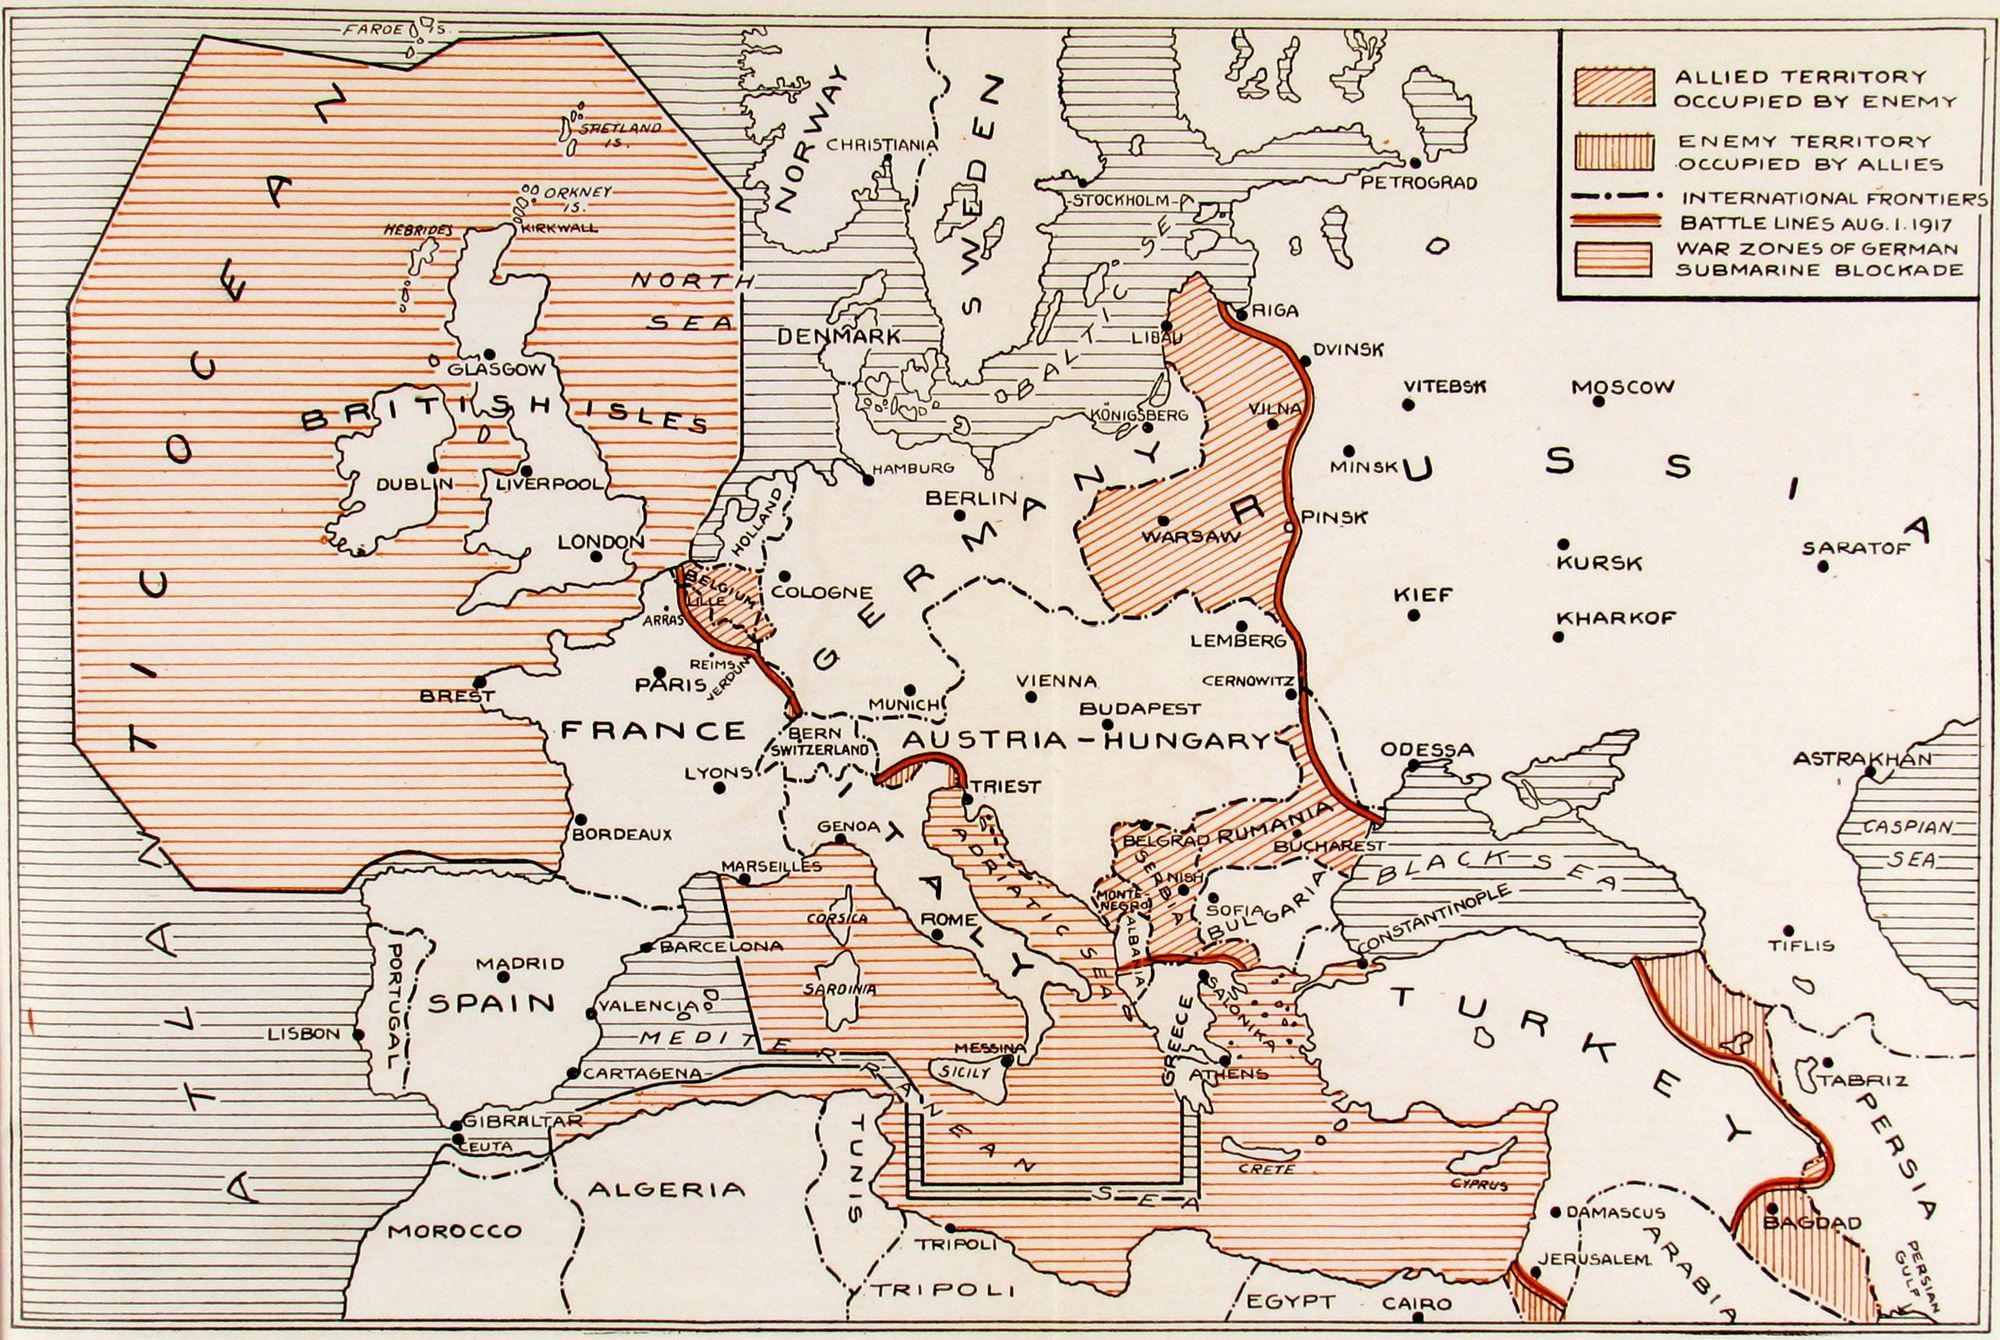 Europe At War Battle Lines On All Fronts August Map - 1917 1918 us in europe battles map